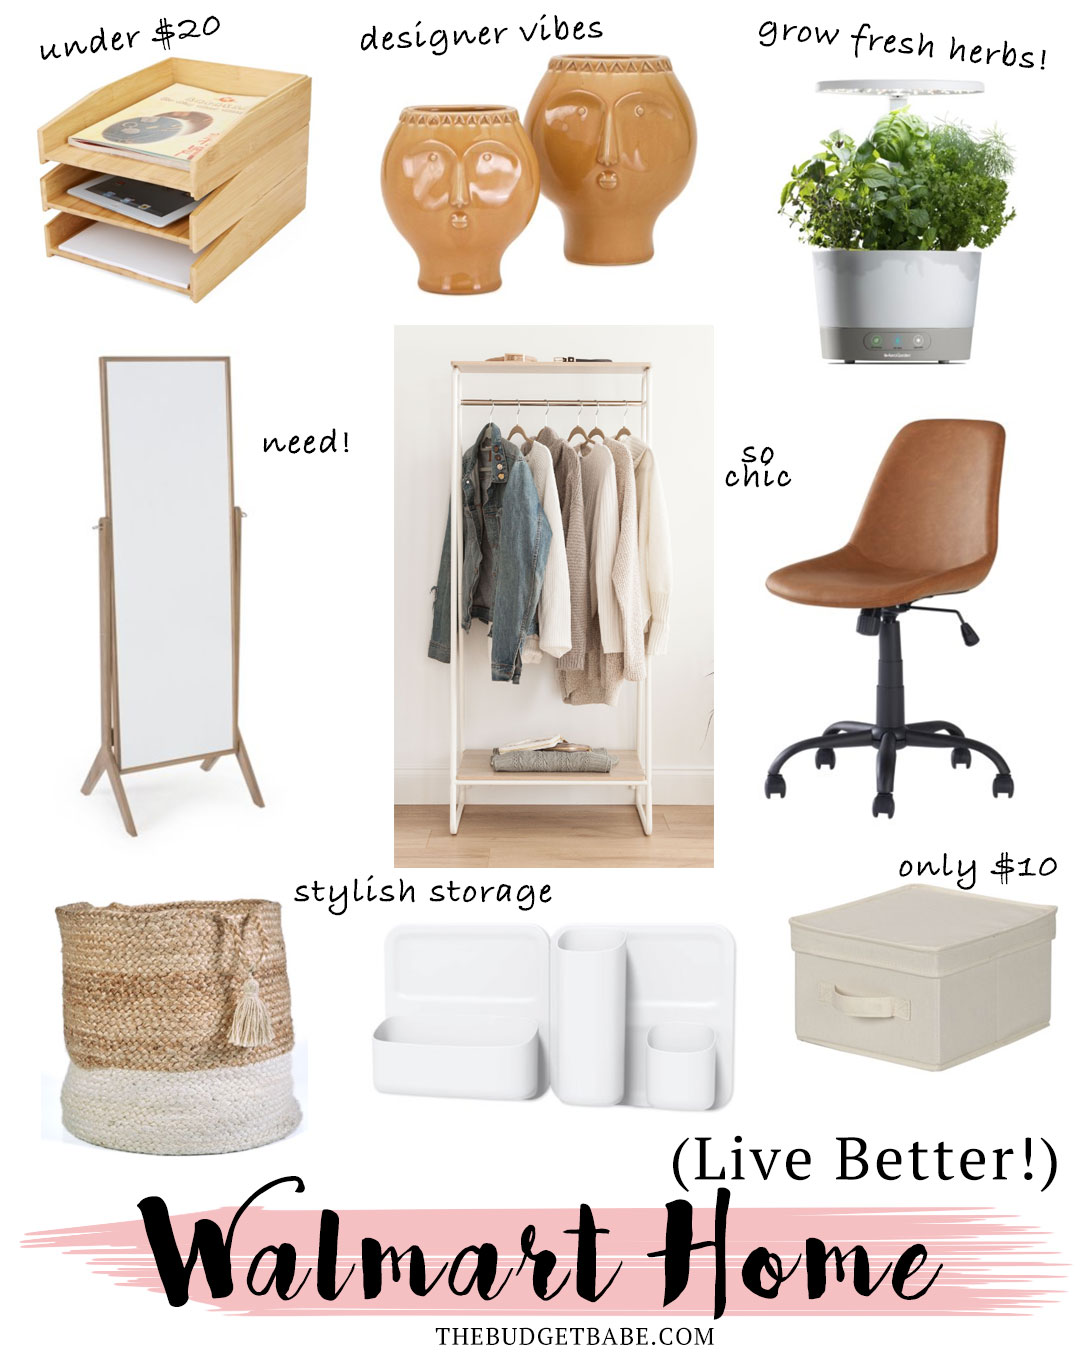 Walmart home finds on a budget - need that mirror and that basket!